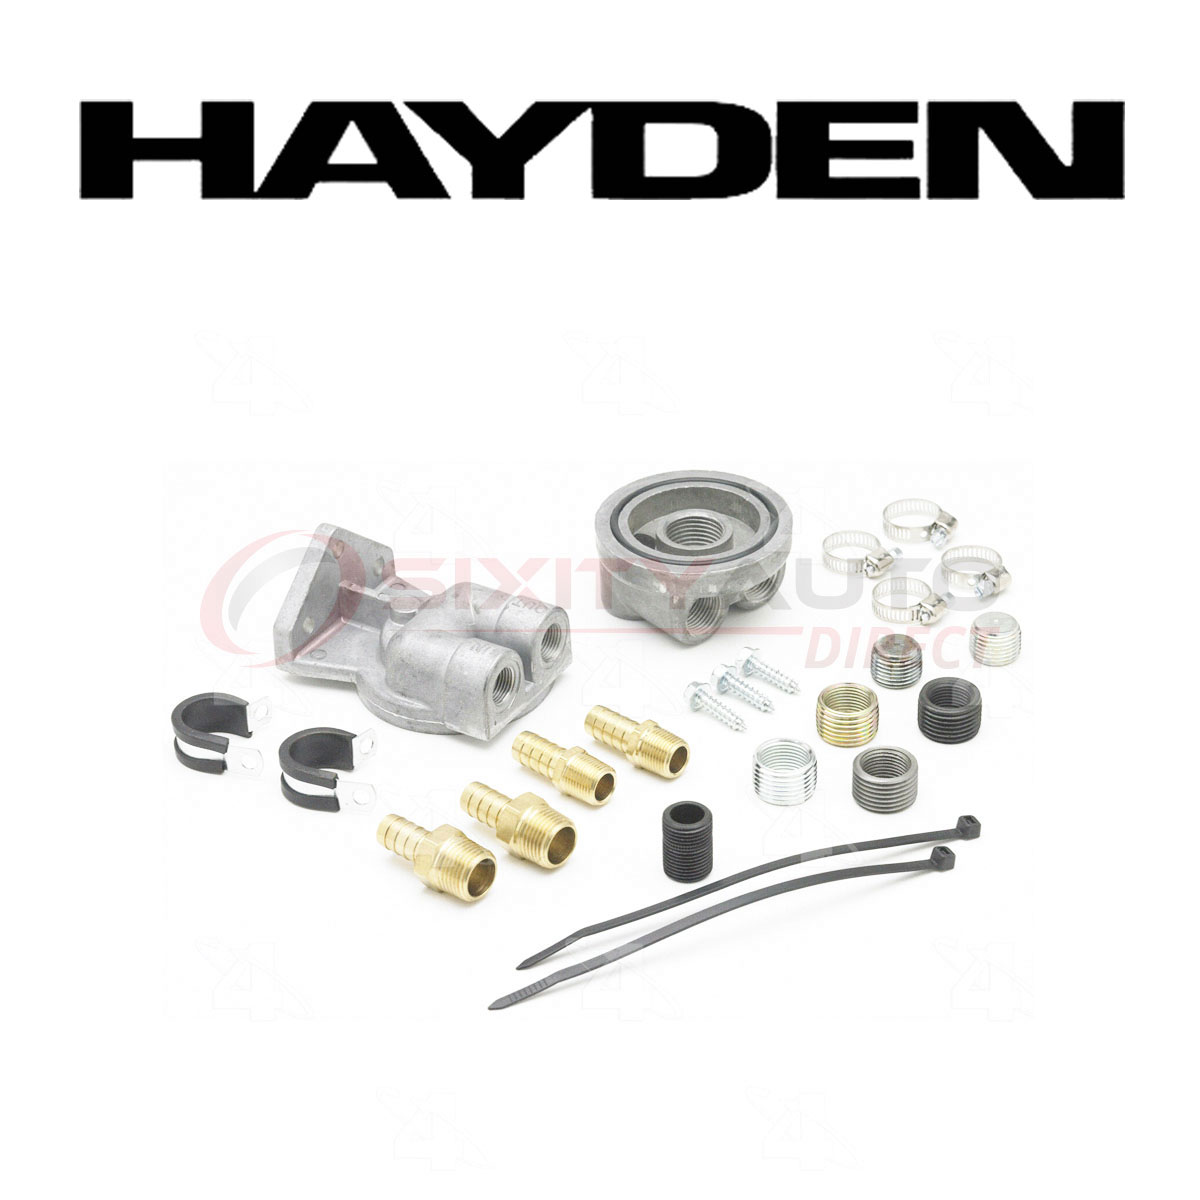 Hayden Oil Filter Remote Mounting Kit for 2010 Jeep